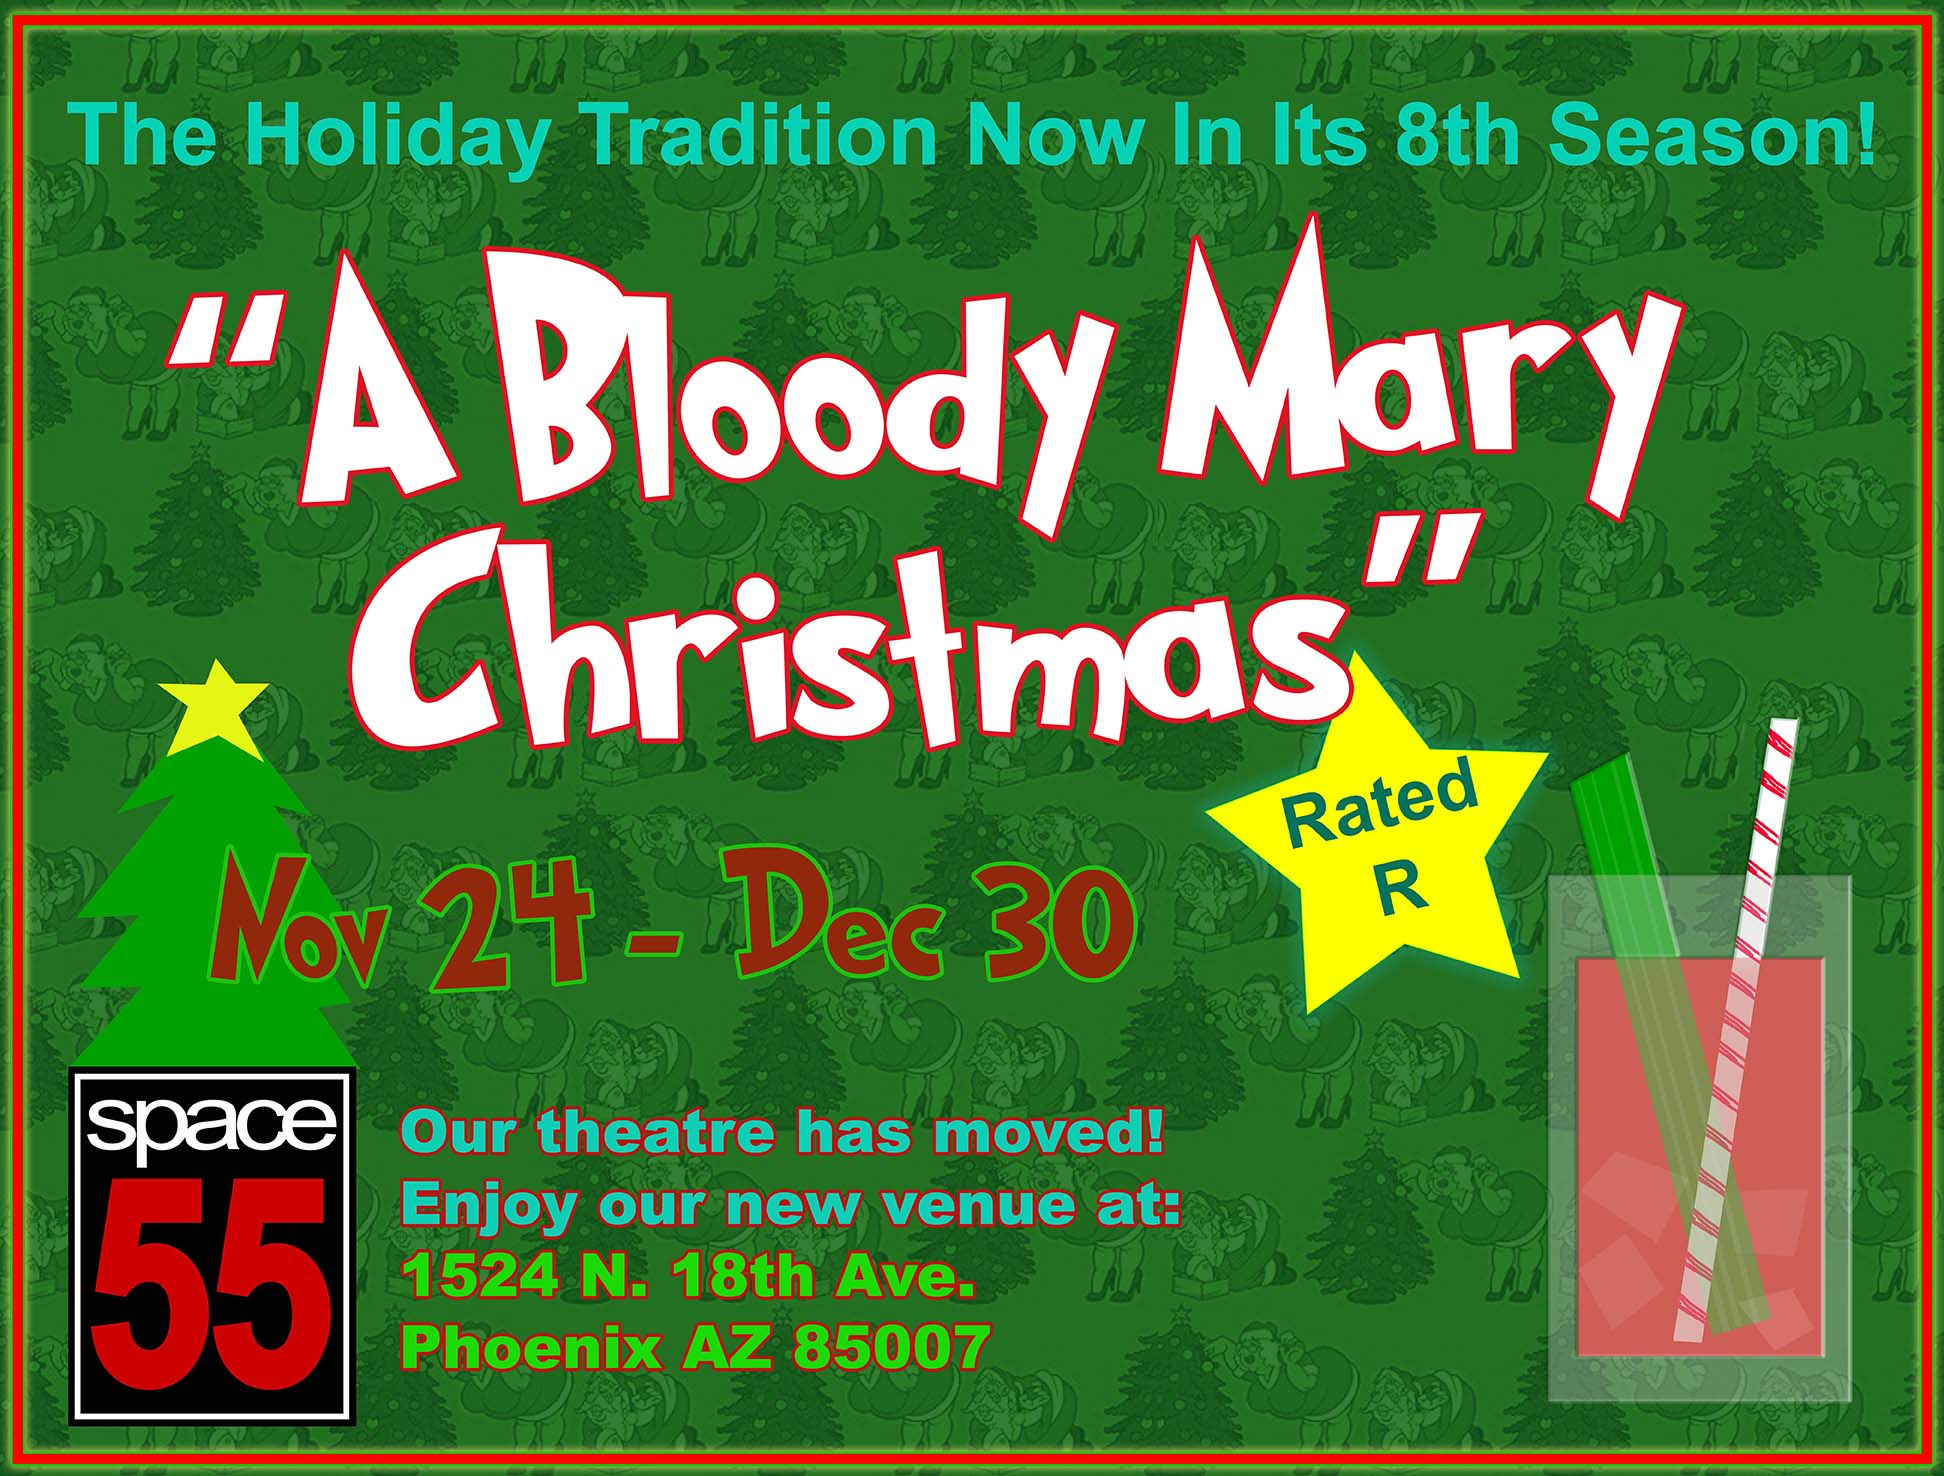 A Bloody Mary Christmas